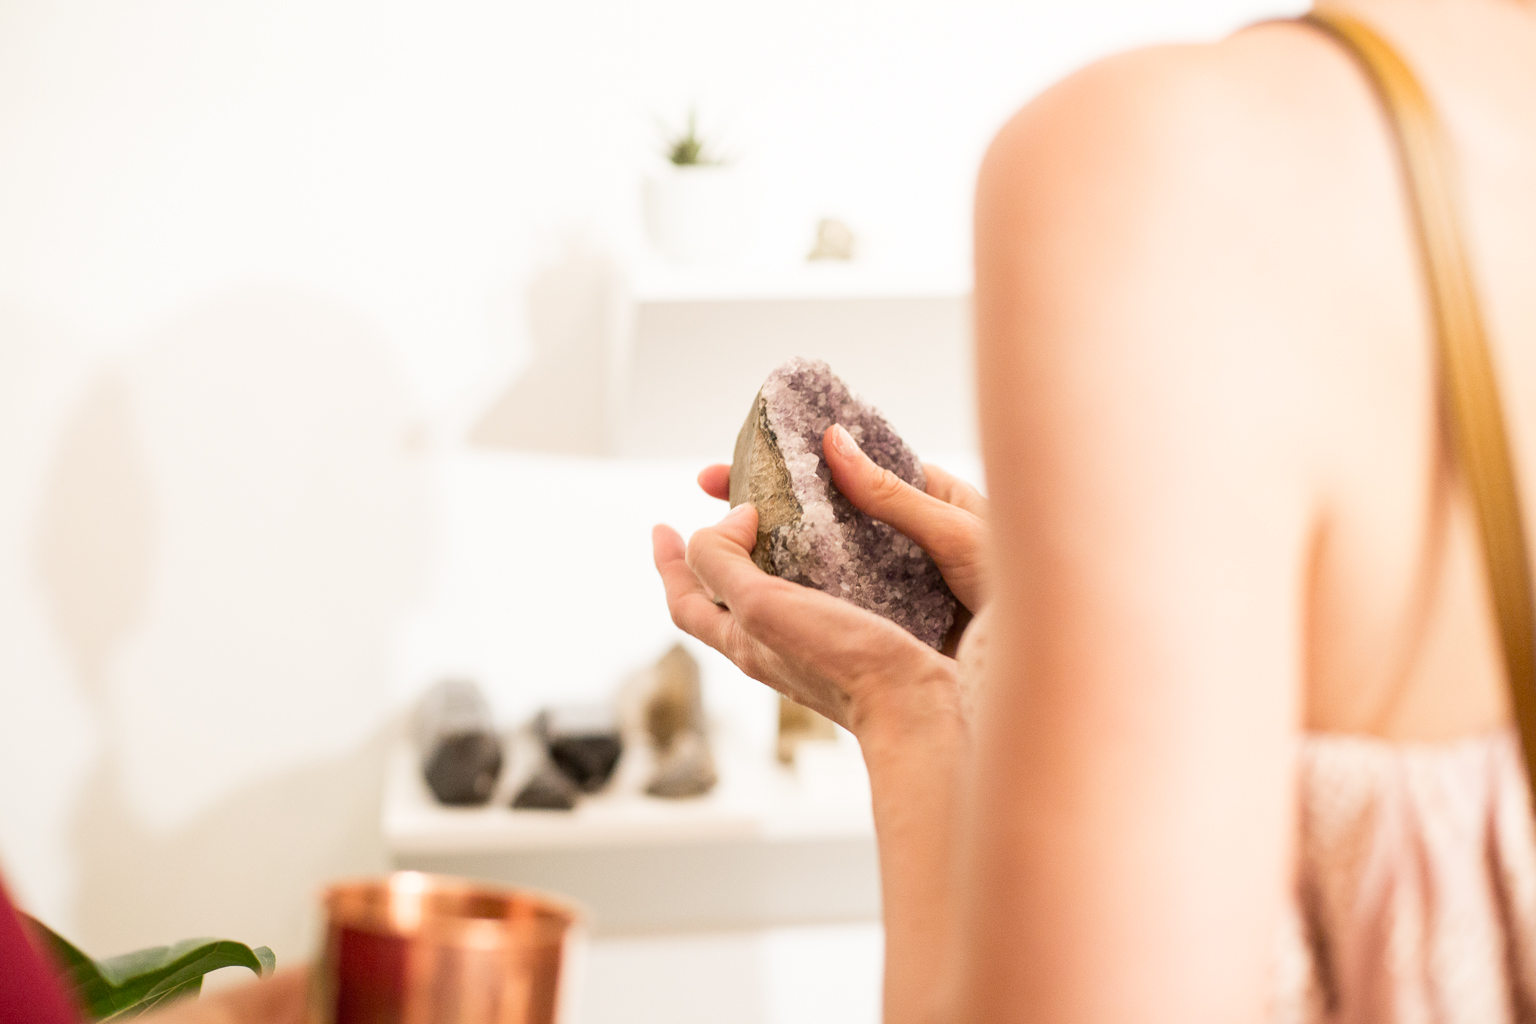 Stop by Space by Mama Medicine and choose a few crystals to help clear stagnant energy: A citrine point can strengthen personal power, and hematite with dragon fire quartz can absorb negative energies - Vogue.com